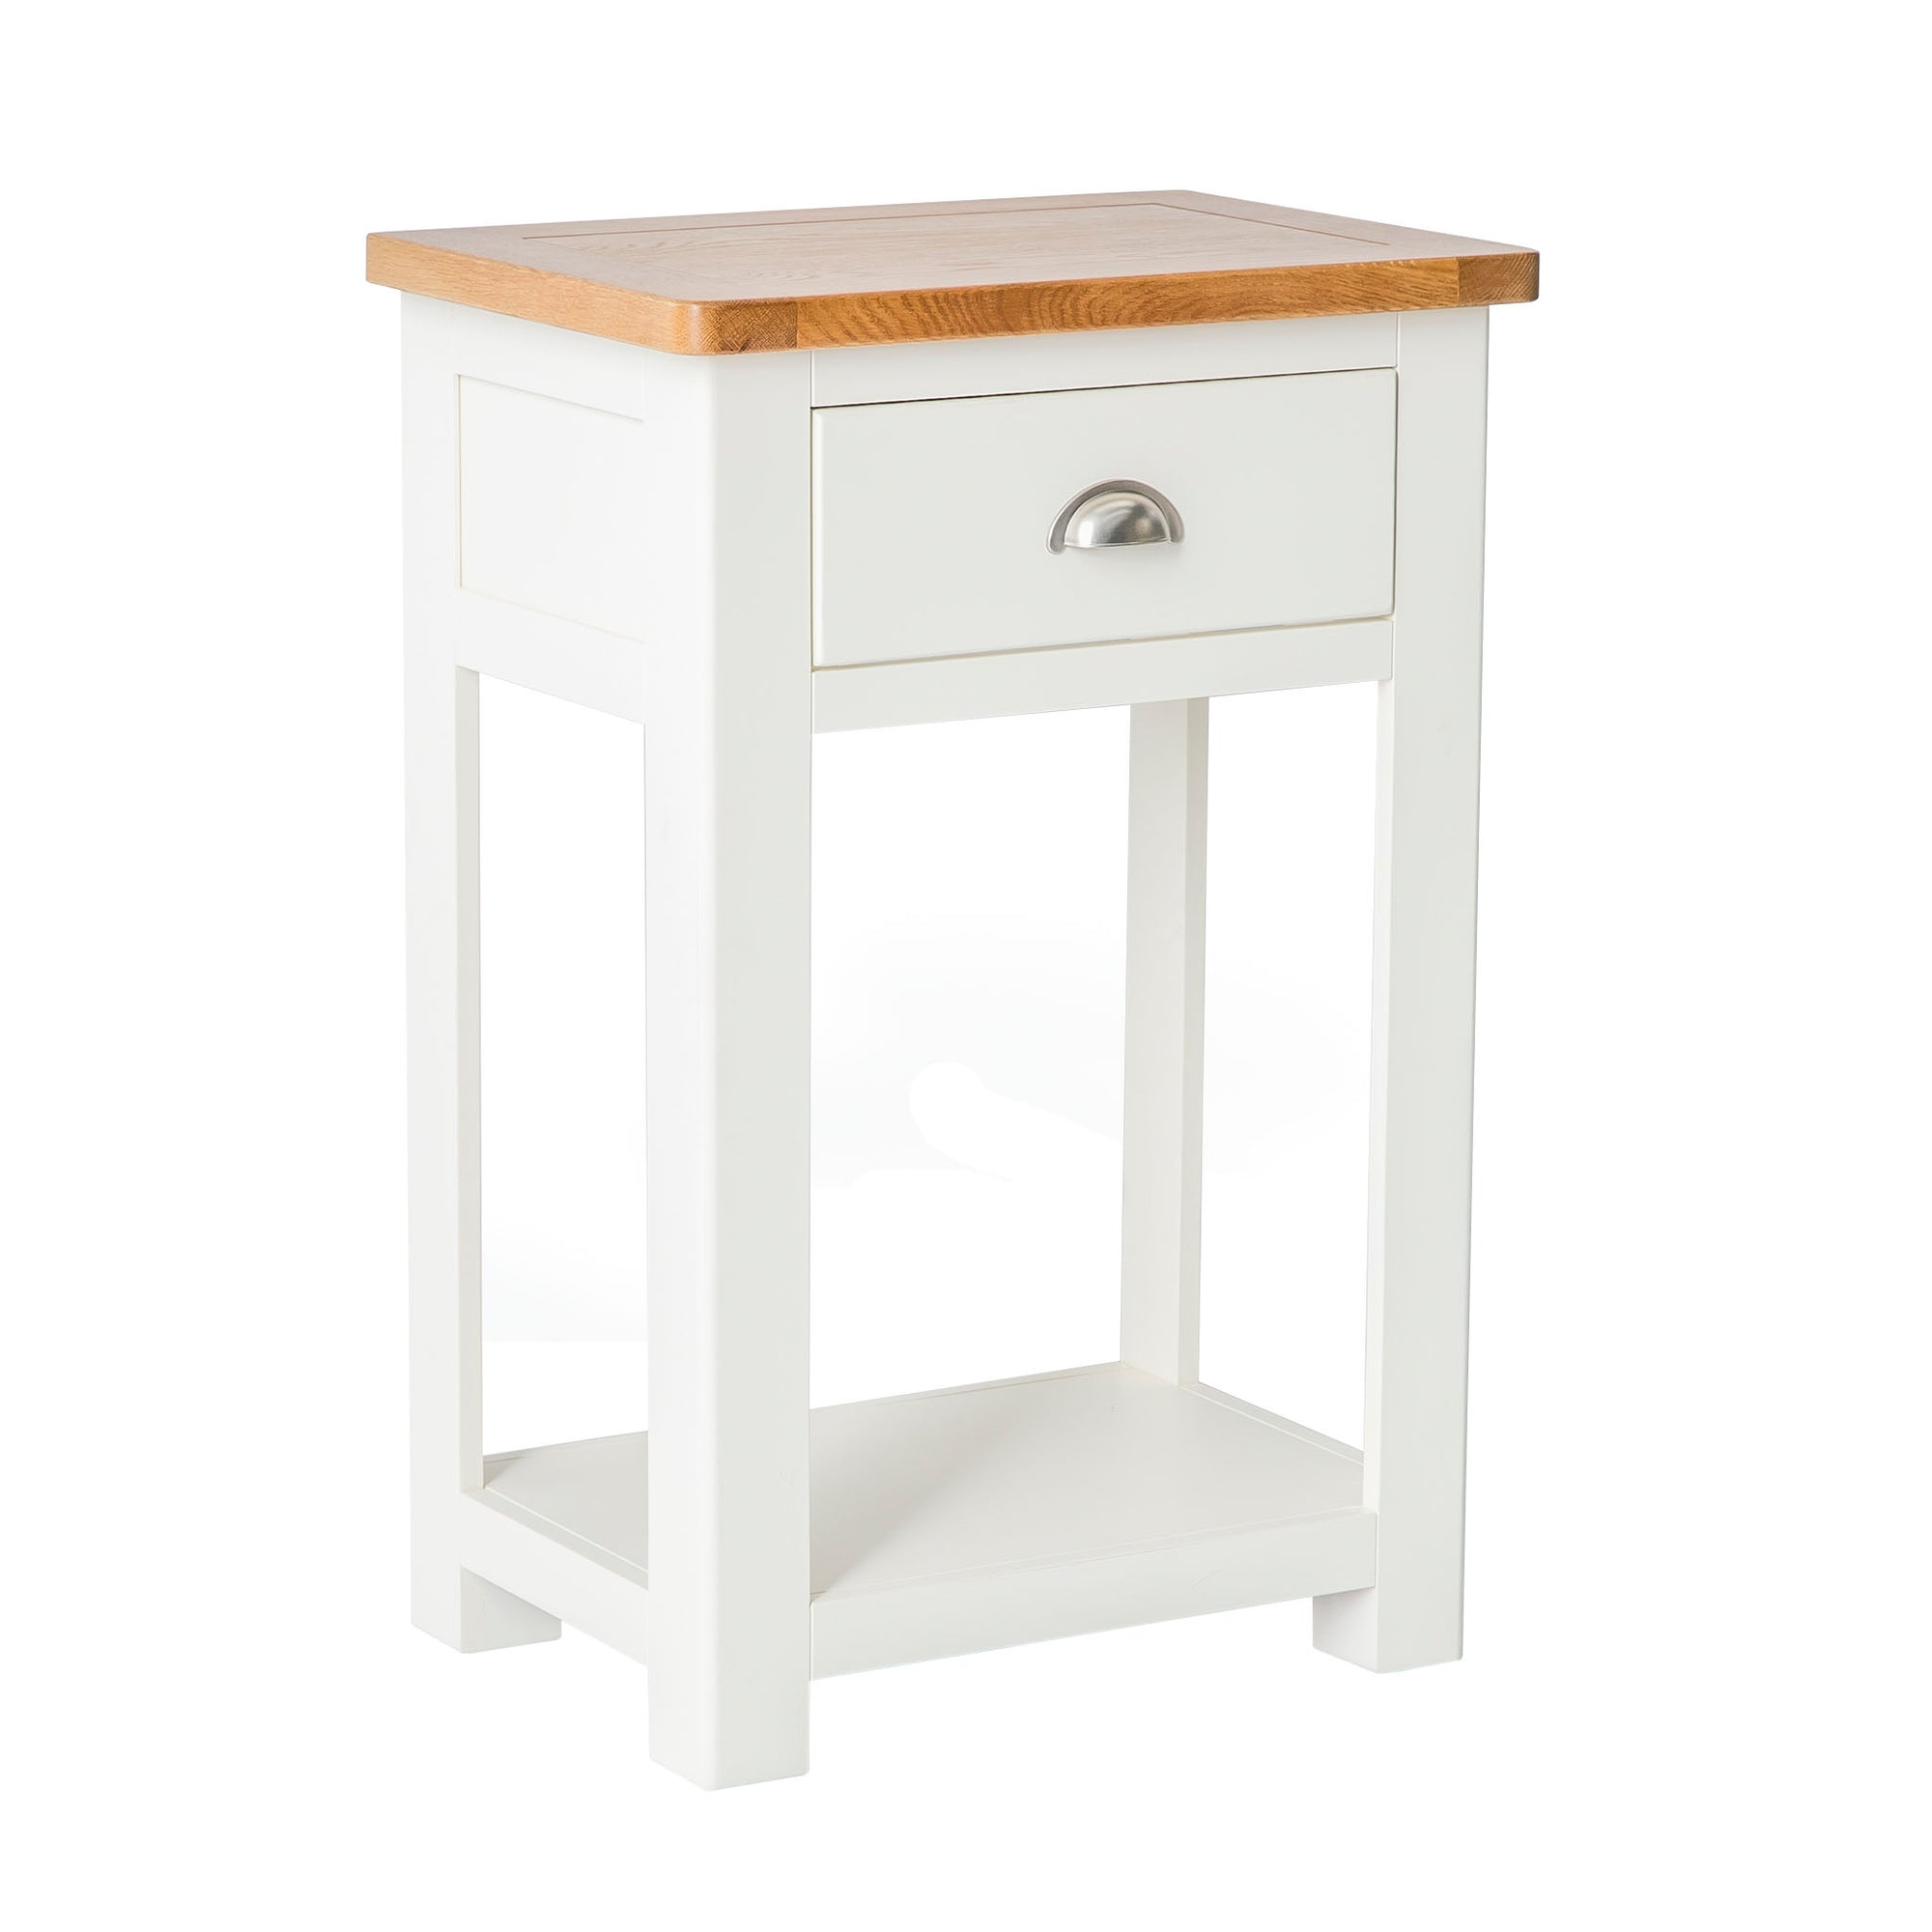 The Padstow White Hallway Telephone Table with Drawer